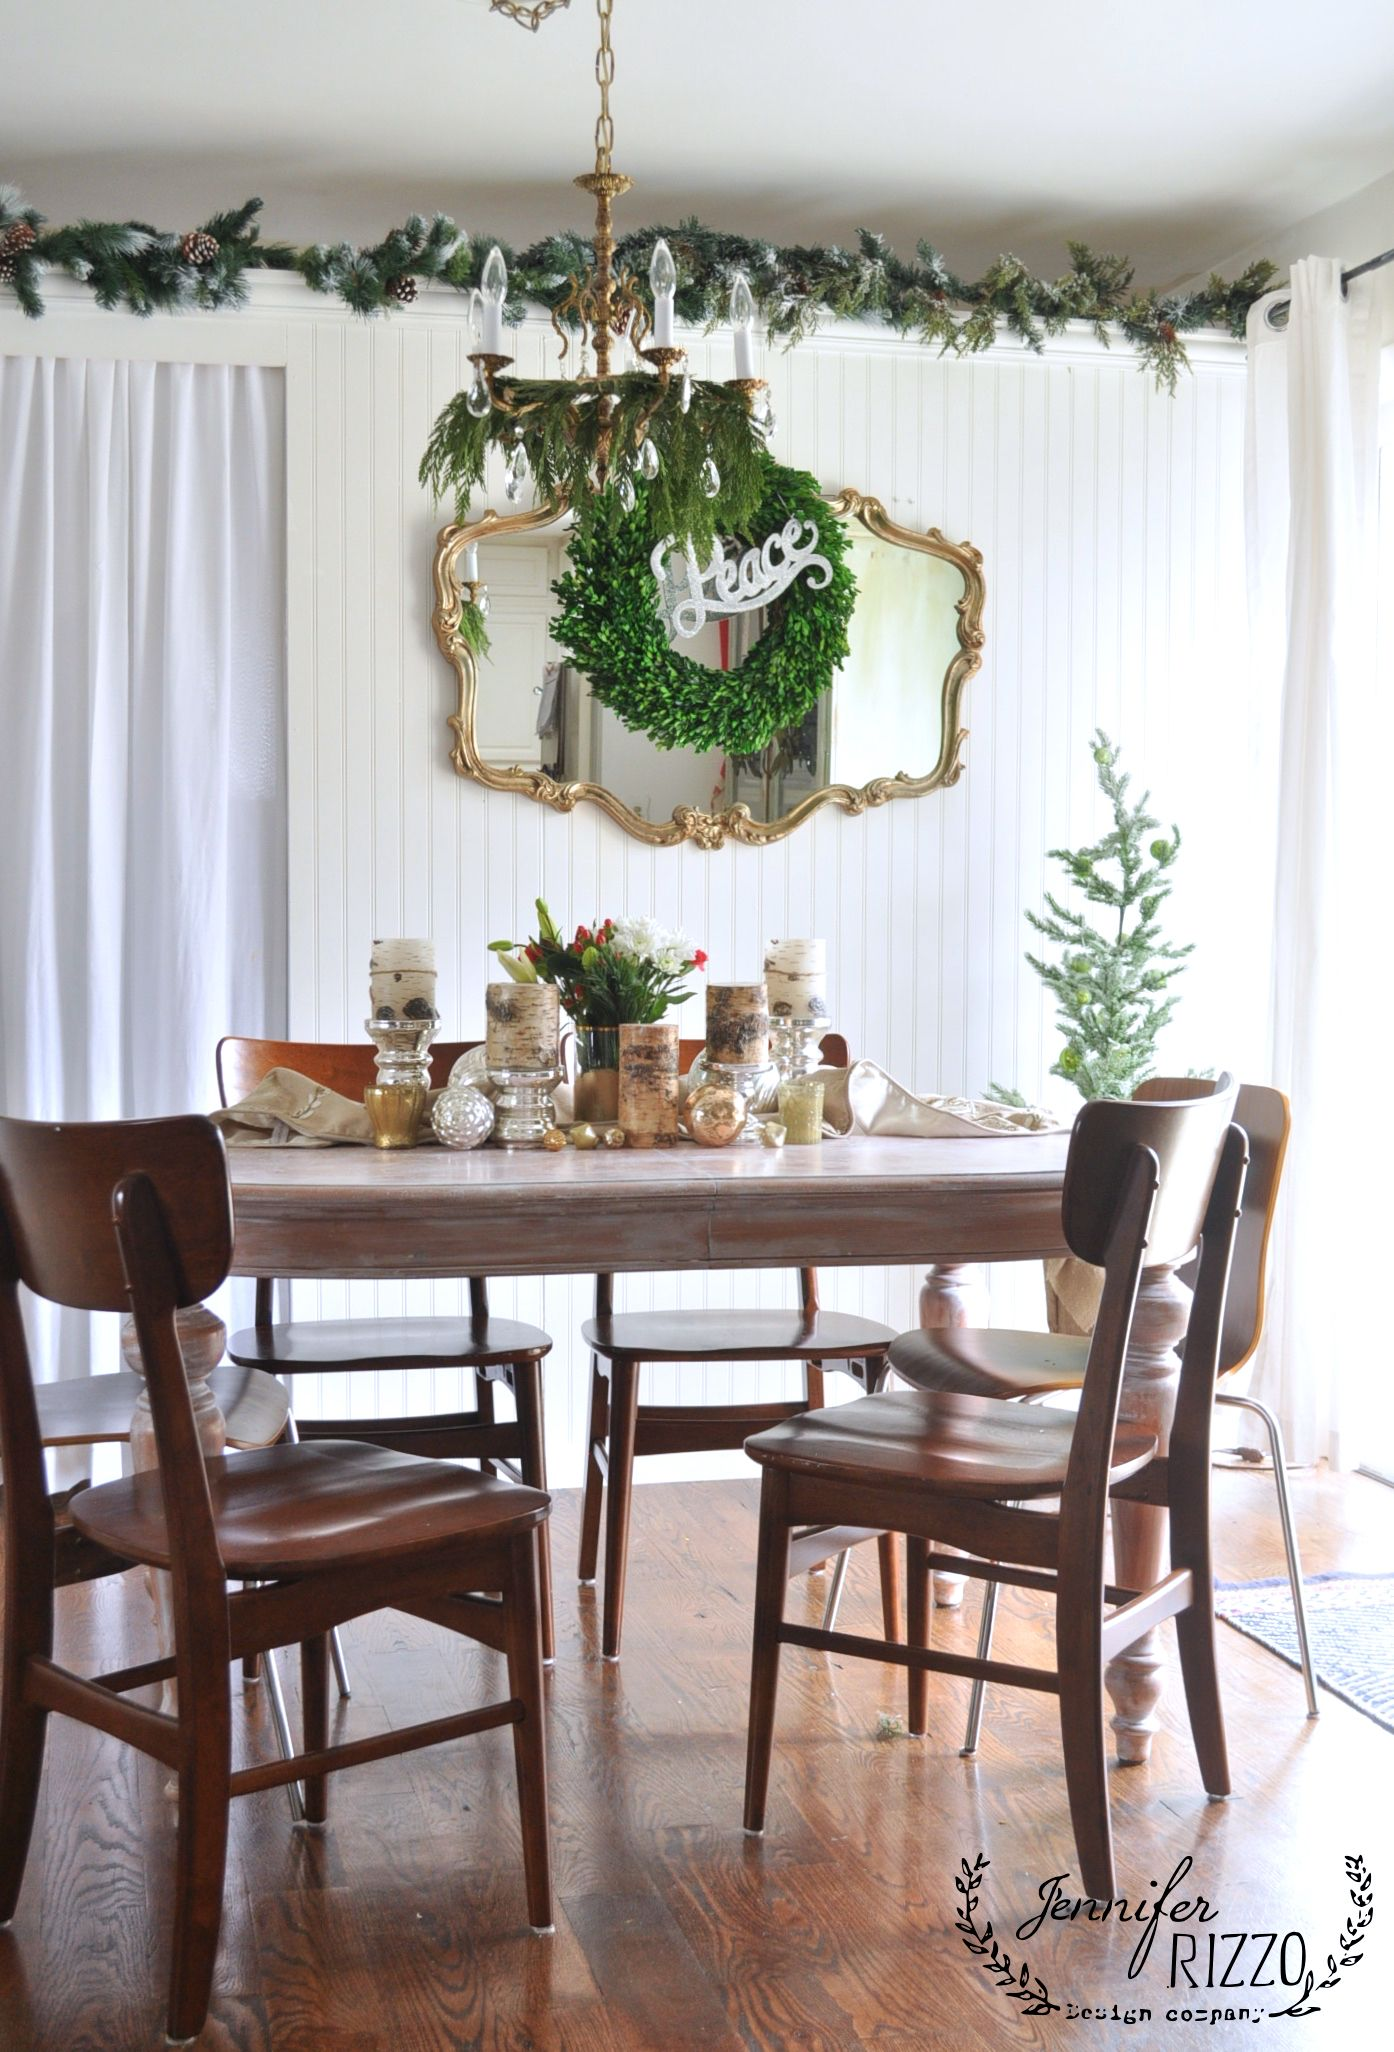 Wel e to my 2016 decorated holiday home tour